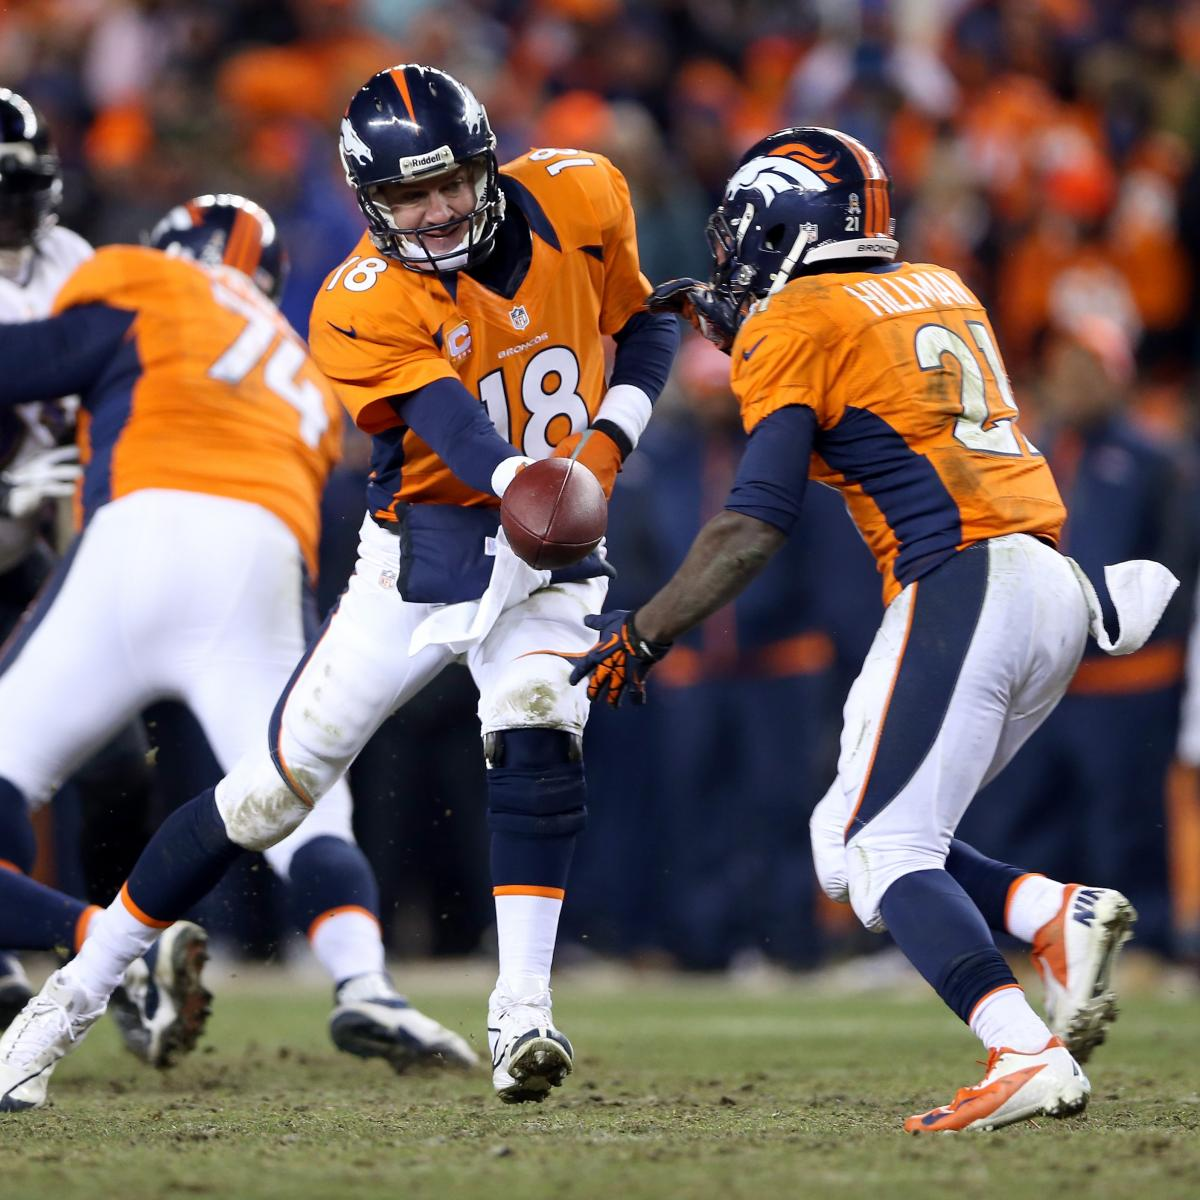 Denver Broncos Re Grading Their Key 2013 Offseason: How The Broncos Can Improve Most In 2013